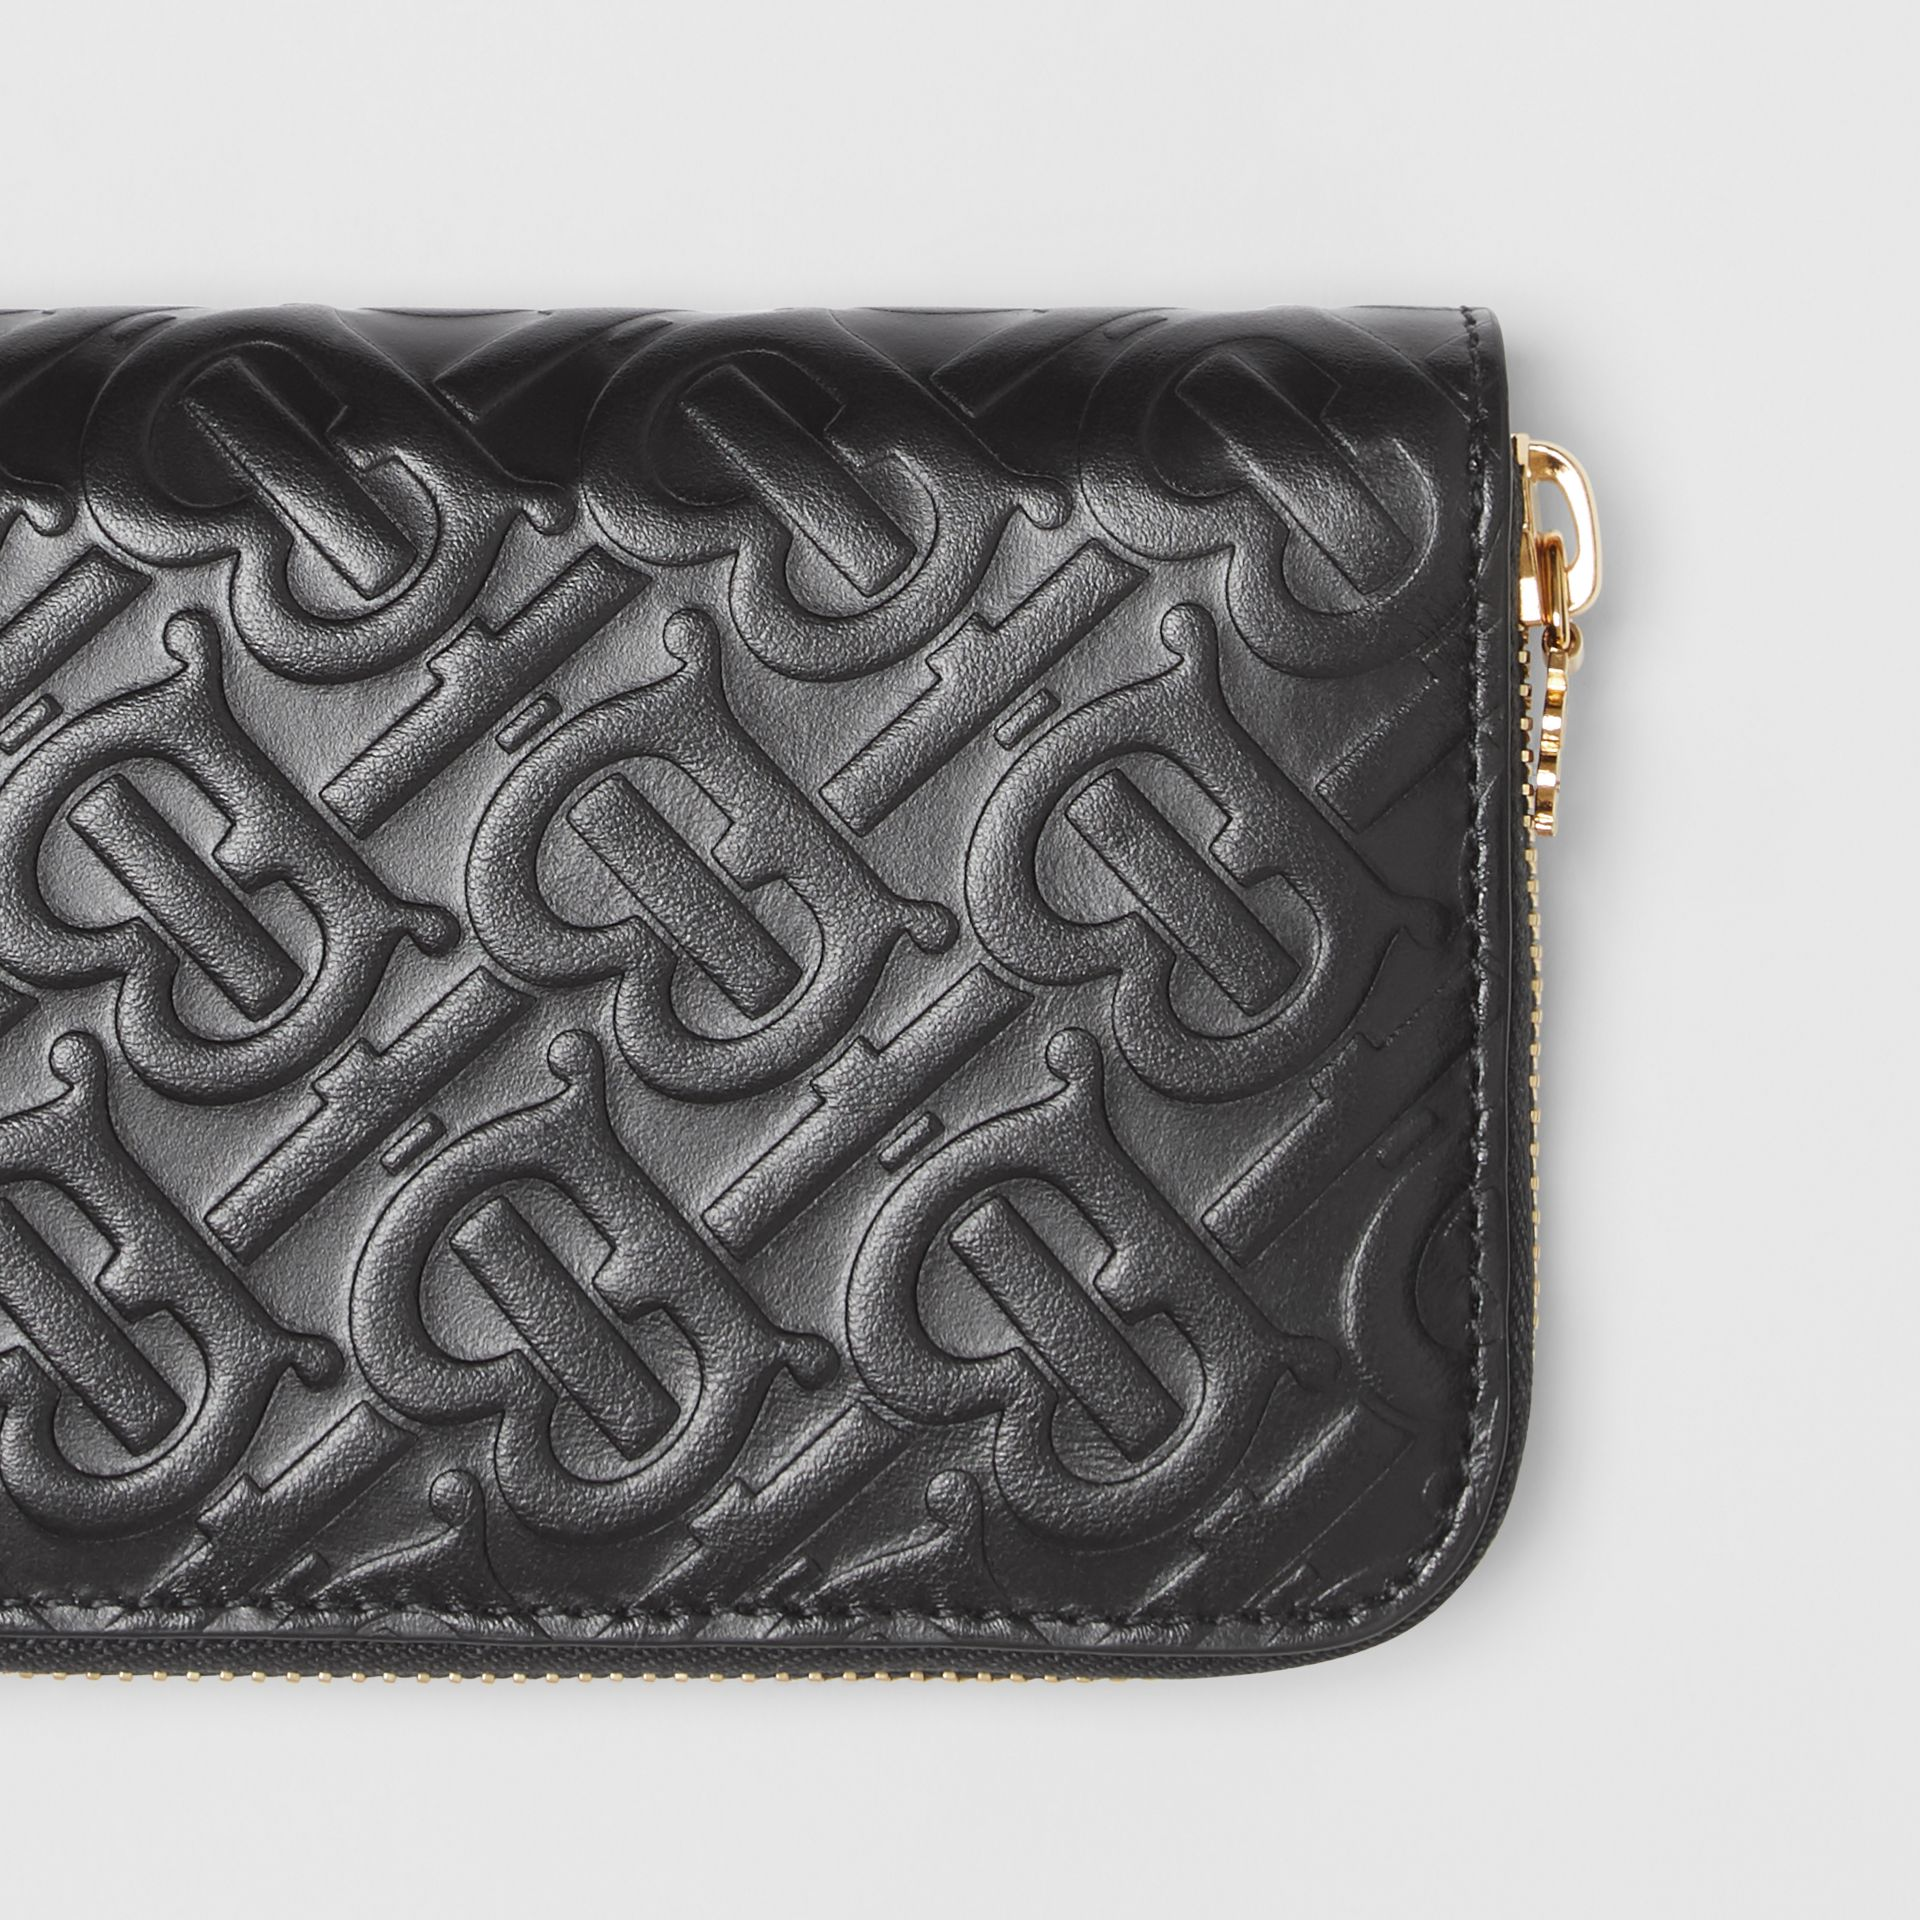 Monogram Leather Ziparound Wallet in Black - Women | Burberry - gallery image 1